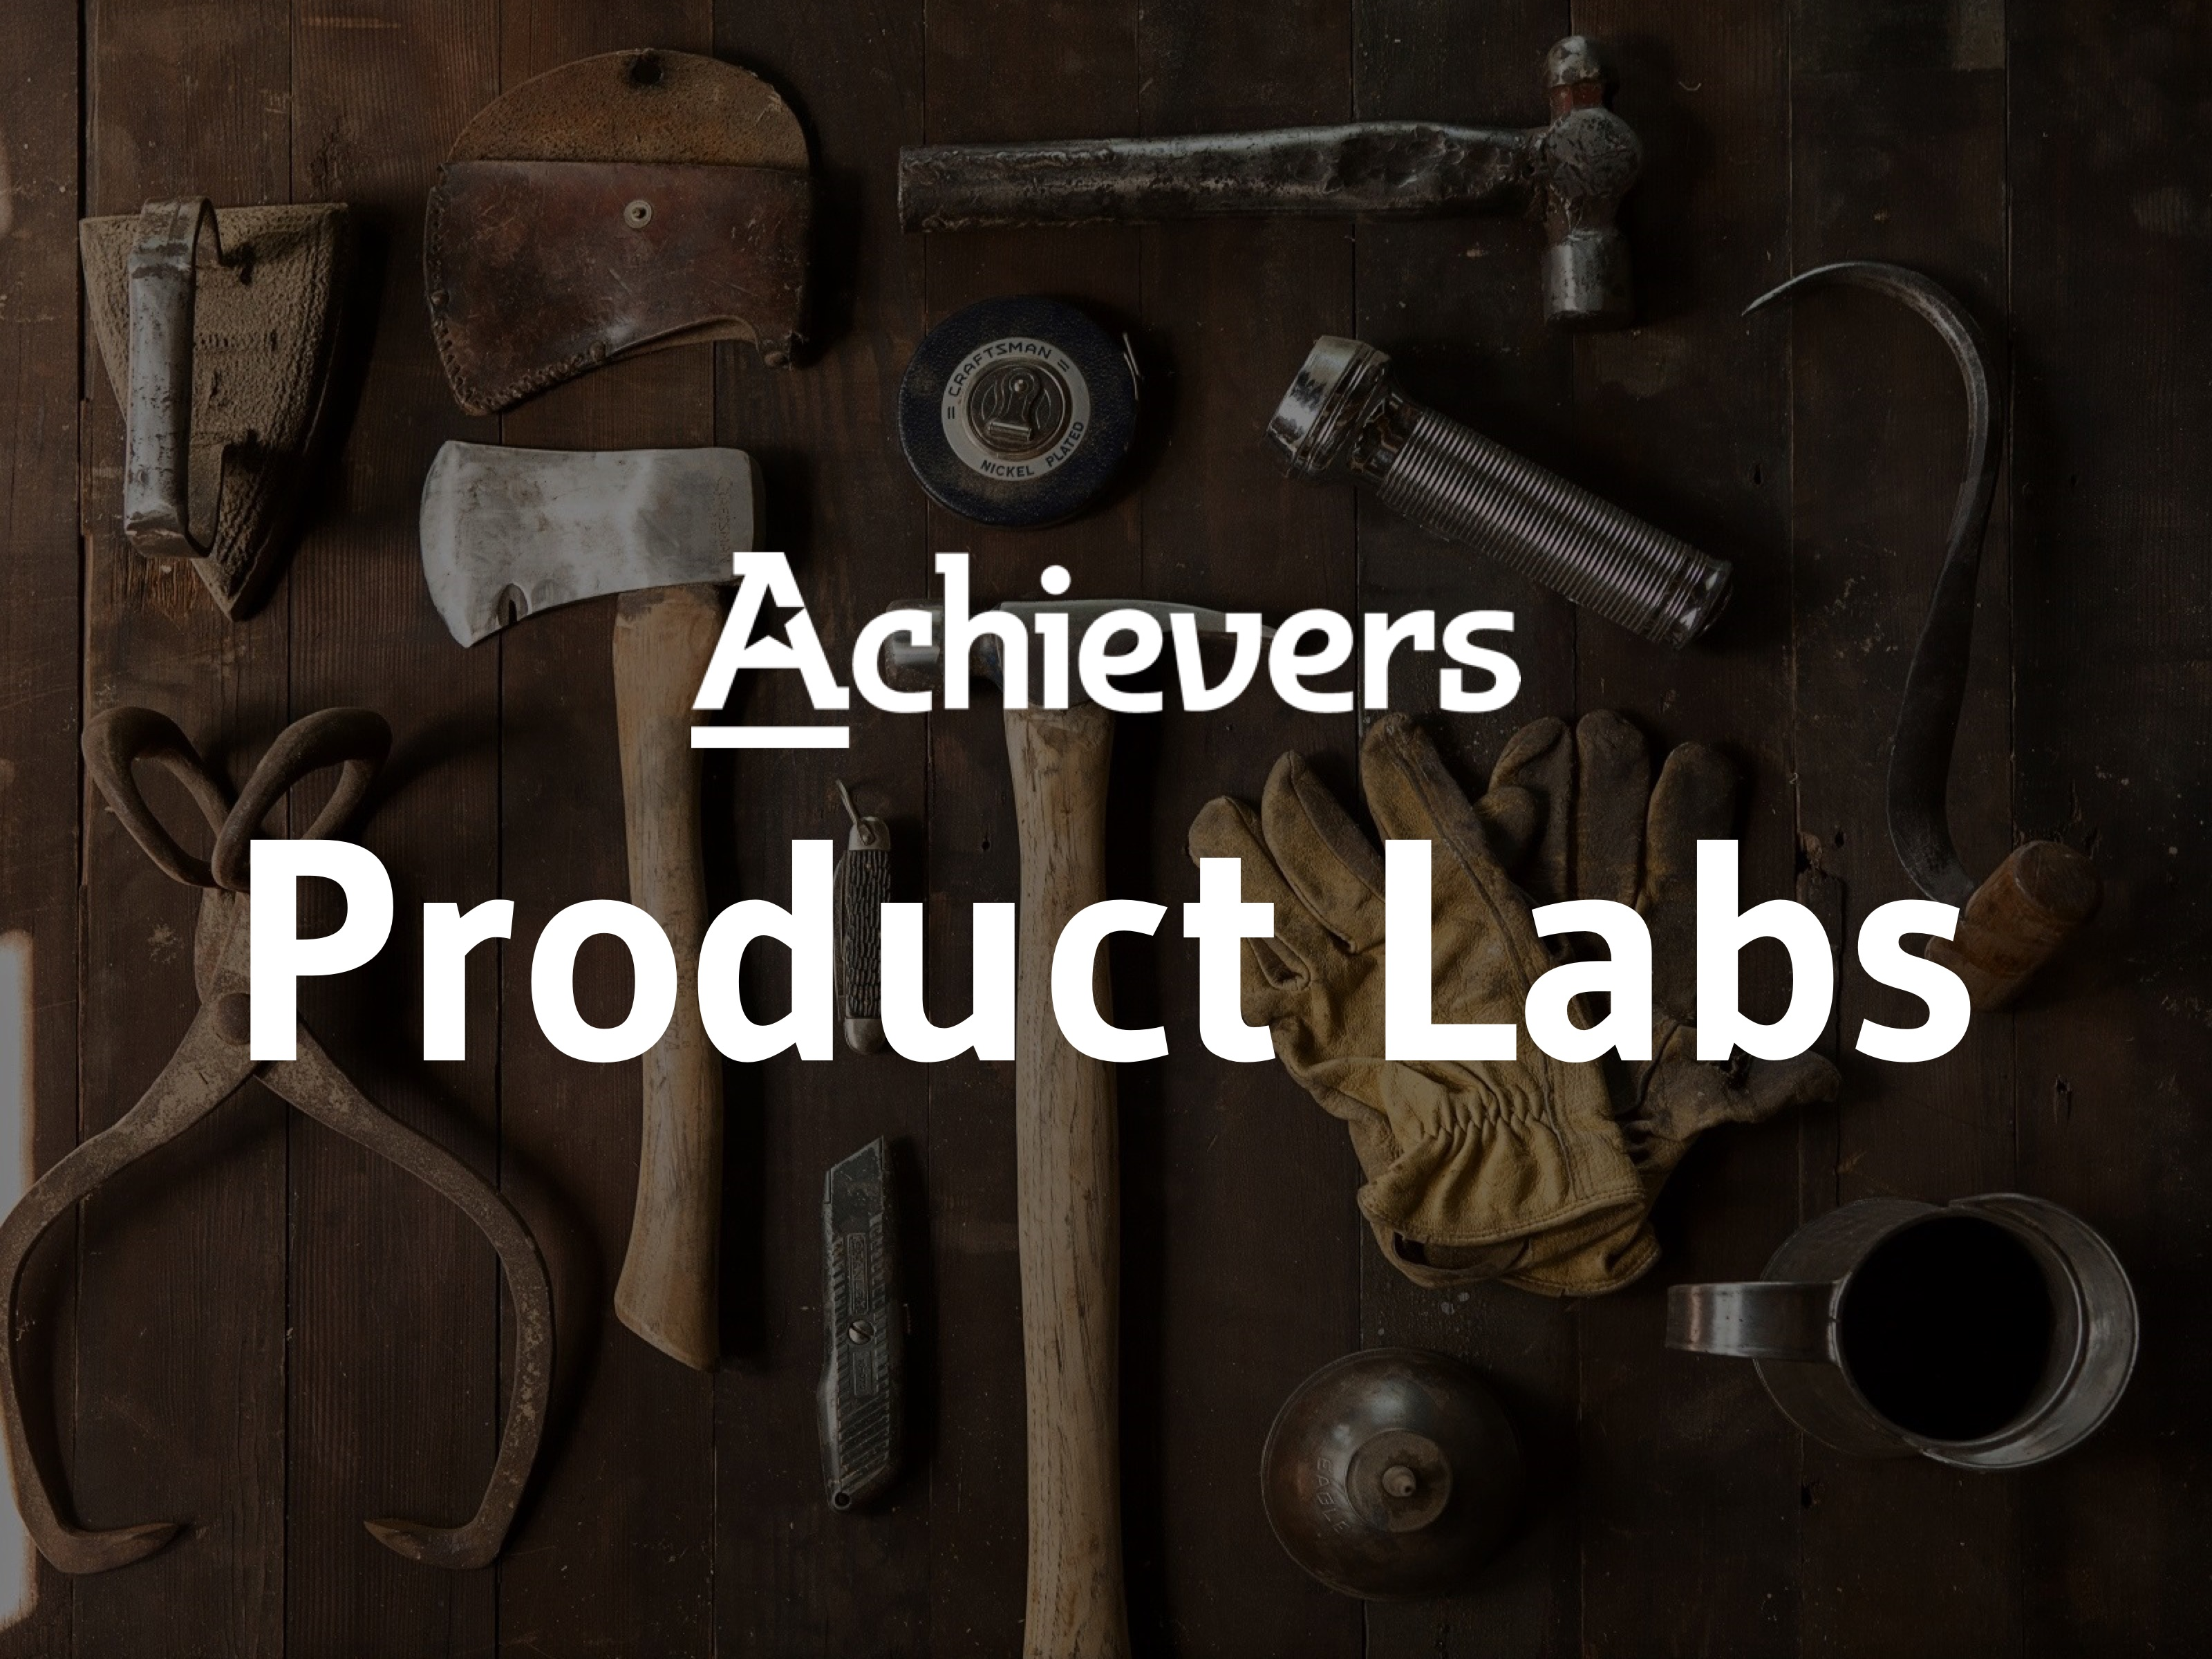 Achievers Product Labs page